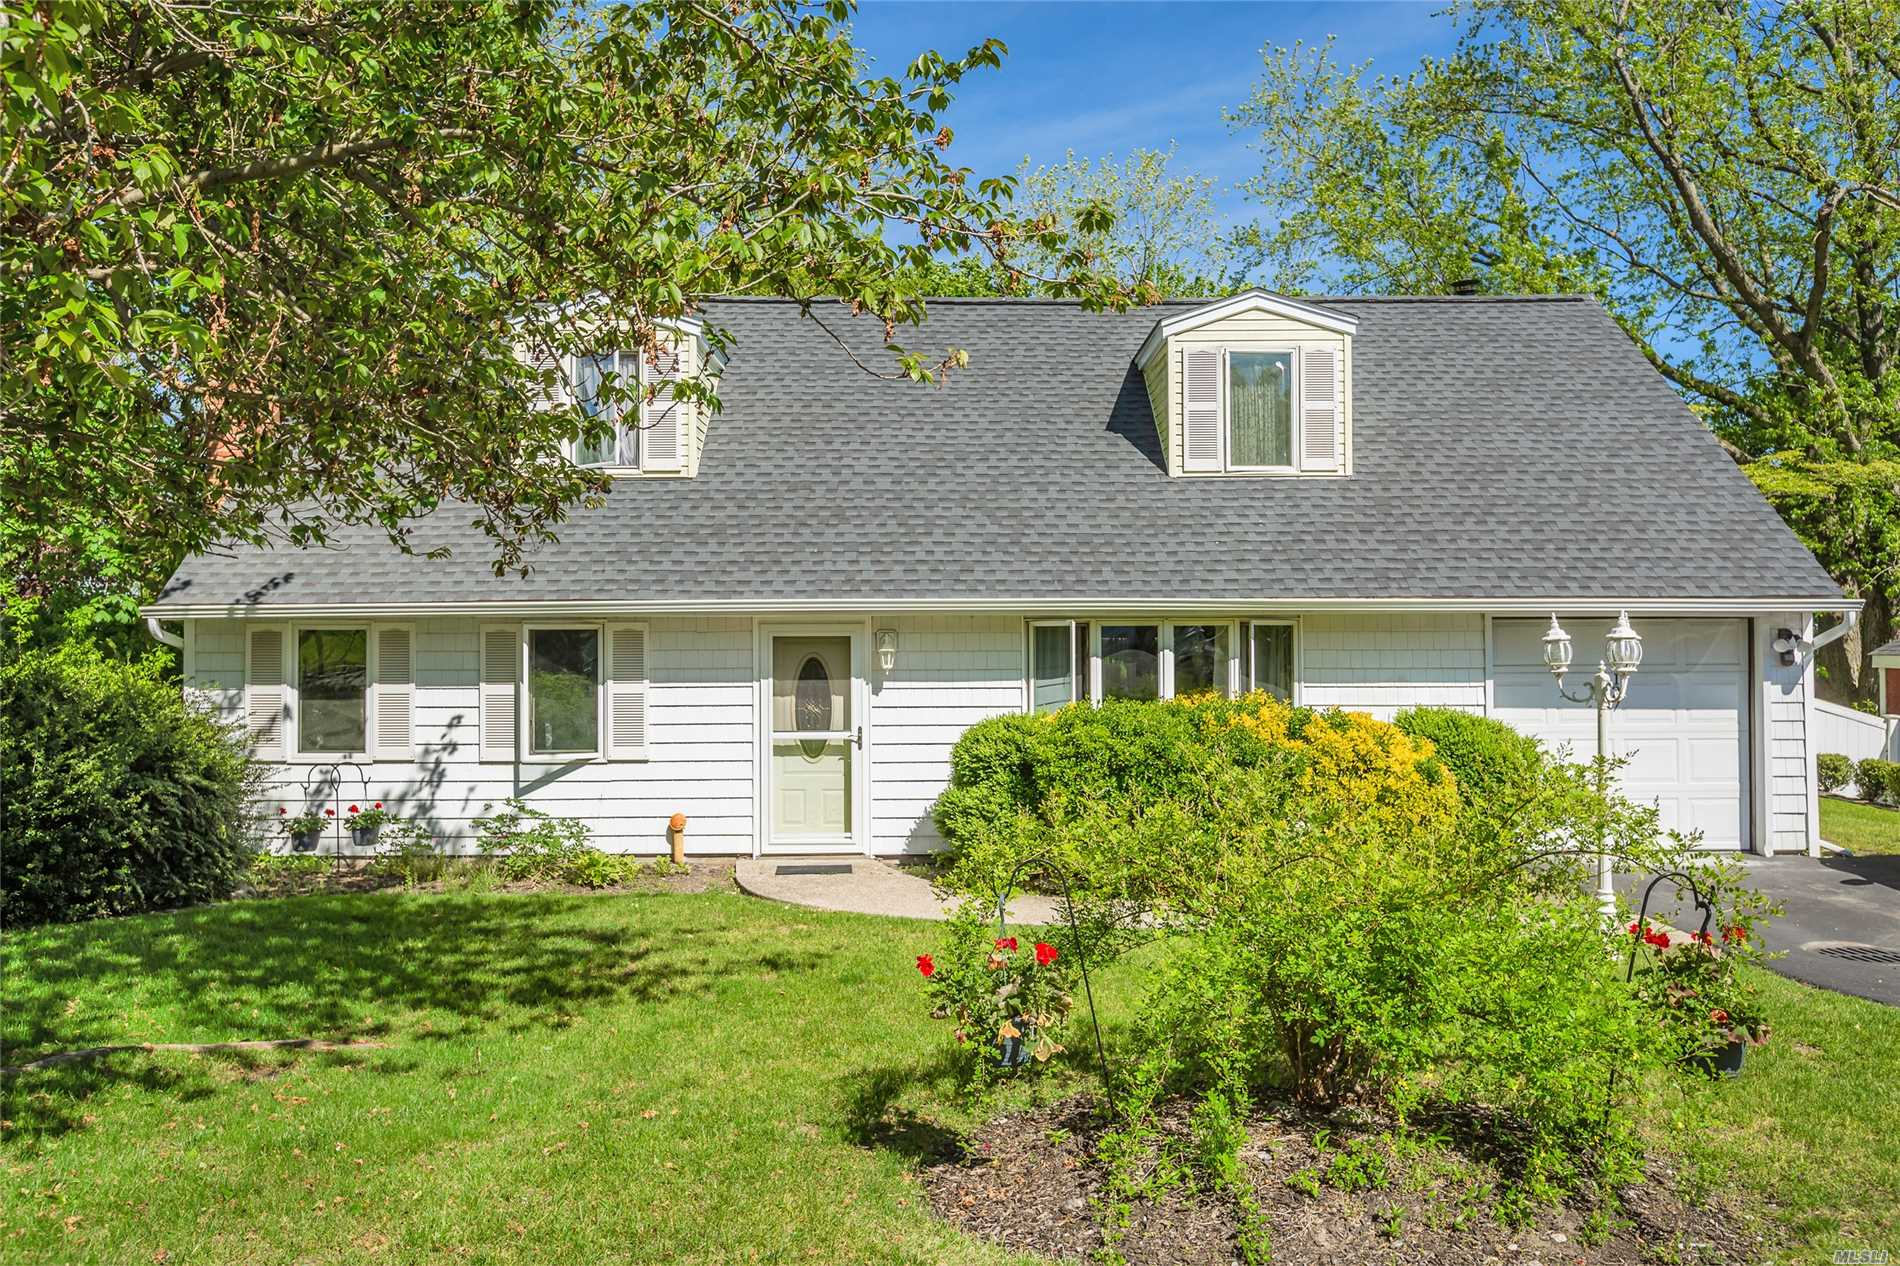 This 4 bedroom 2 bath cape offers a new roof, boiler and water tank are 5 years old. Relax by the fire or on your patio in the yard. Close to the LIE and train.